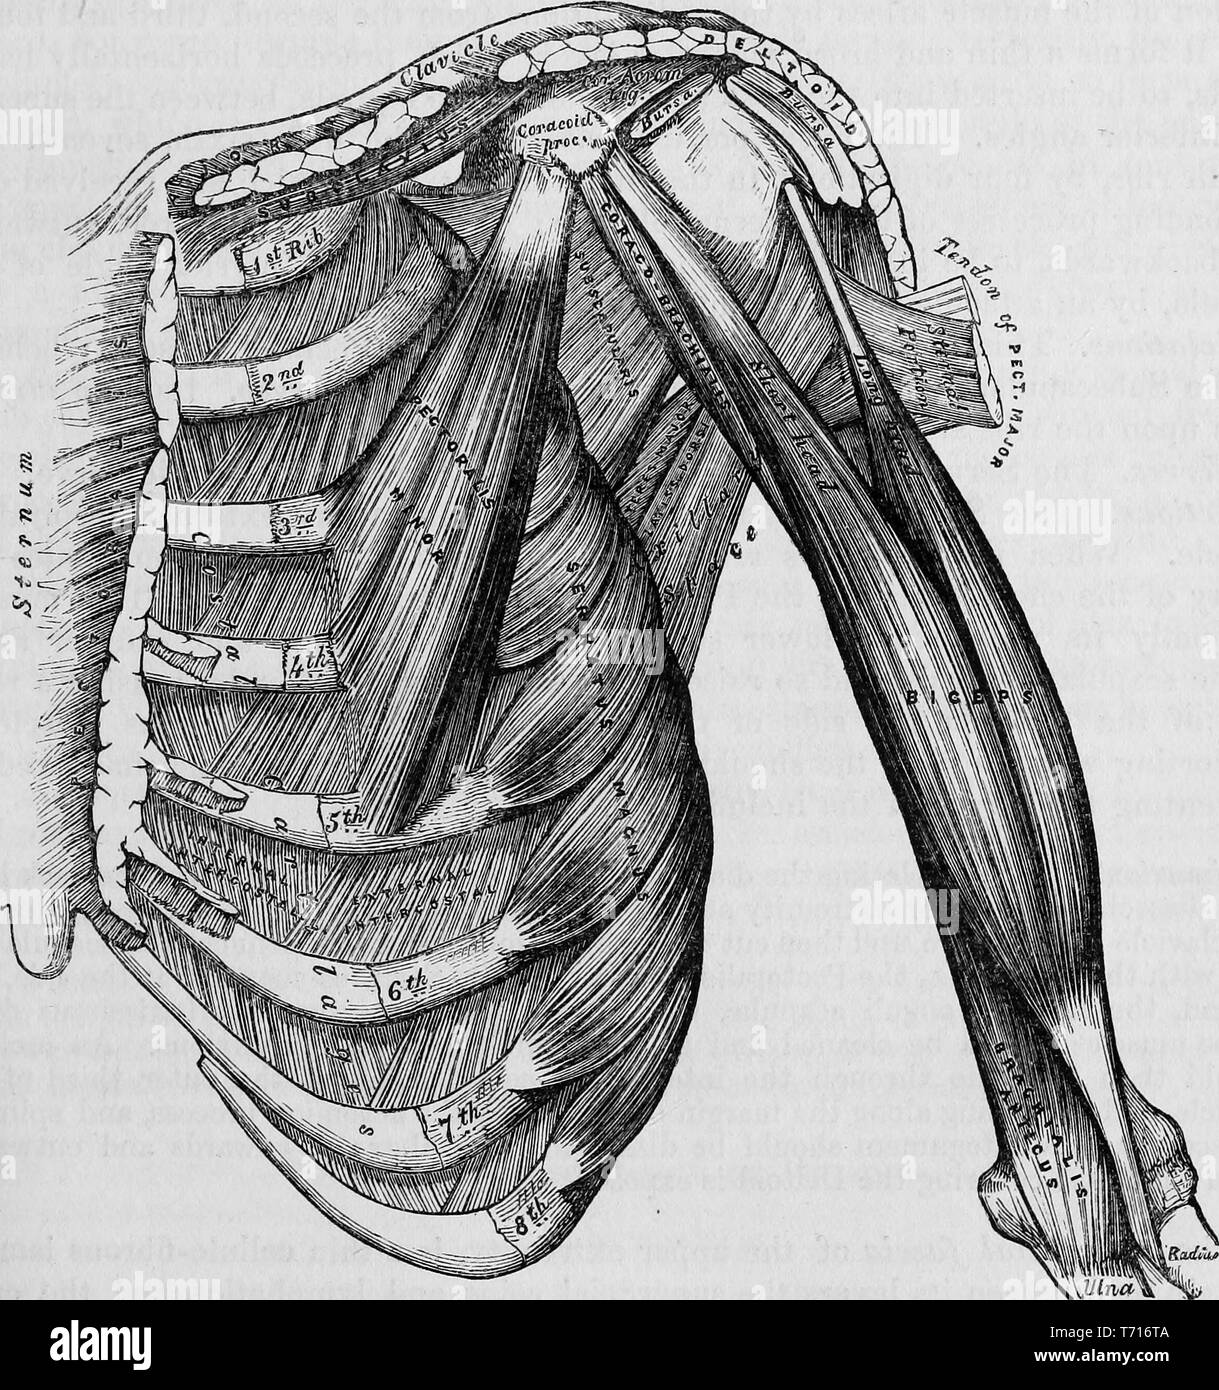 Anatomy illustration of the anterior Thoracic bones and muscles, from the book 'Anatomy, descriptive and surgical' by Henry Gray, Henry Vandyke Carter, and John Guise Westmacott, 1860. Courtesy Internet Archive. () - Stock Image